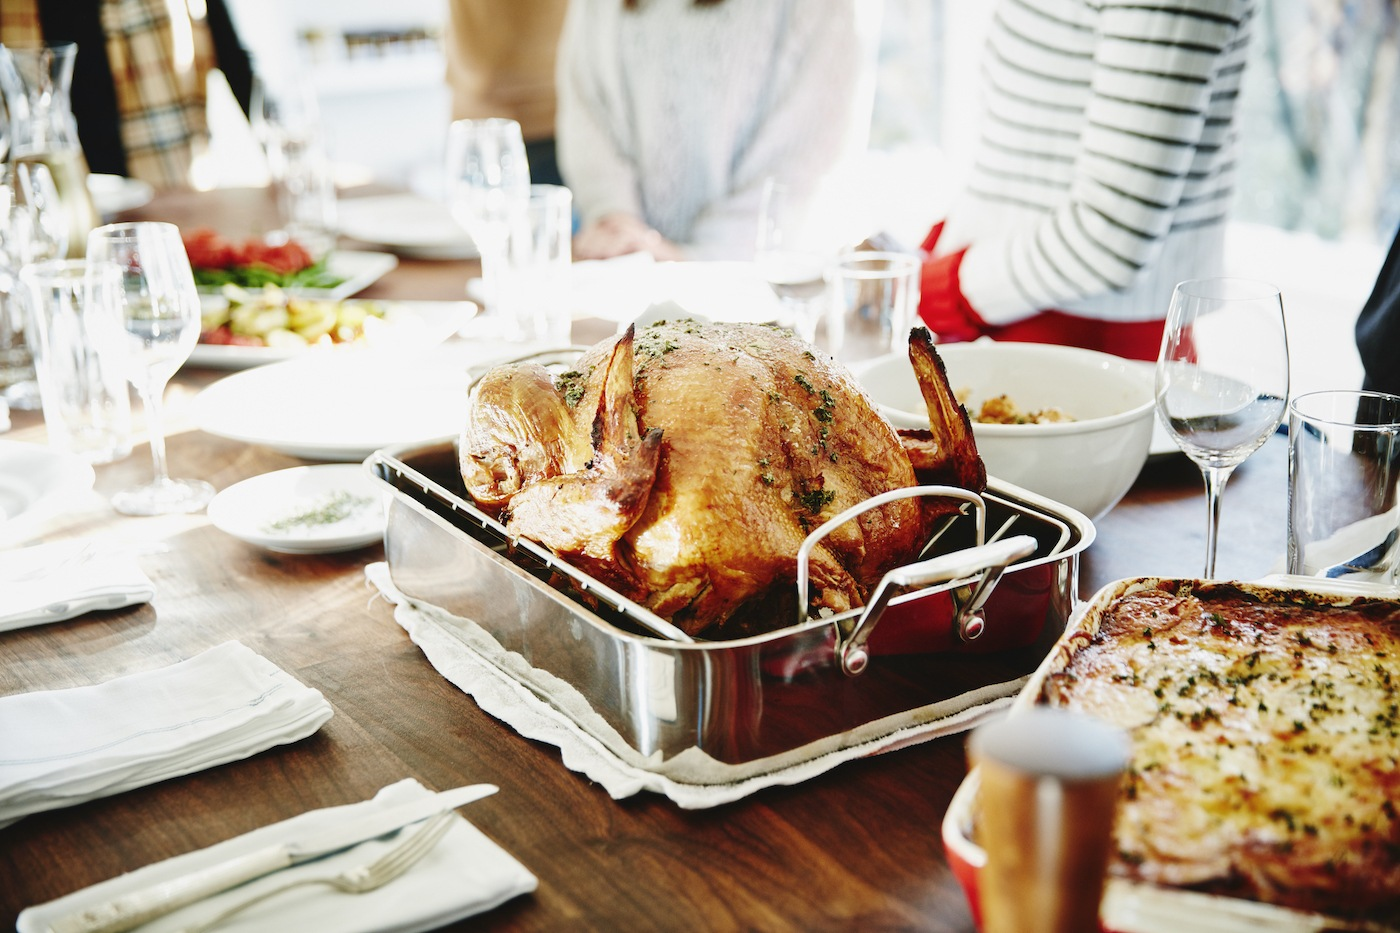 Thumbnail for This Is the Best Time to Eat Your Thanksgiving Meal, According to a Dietitian